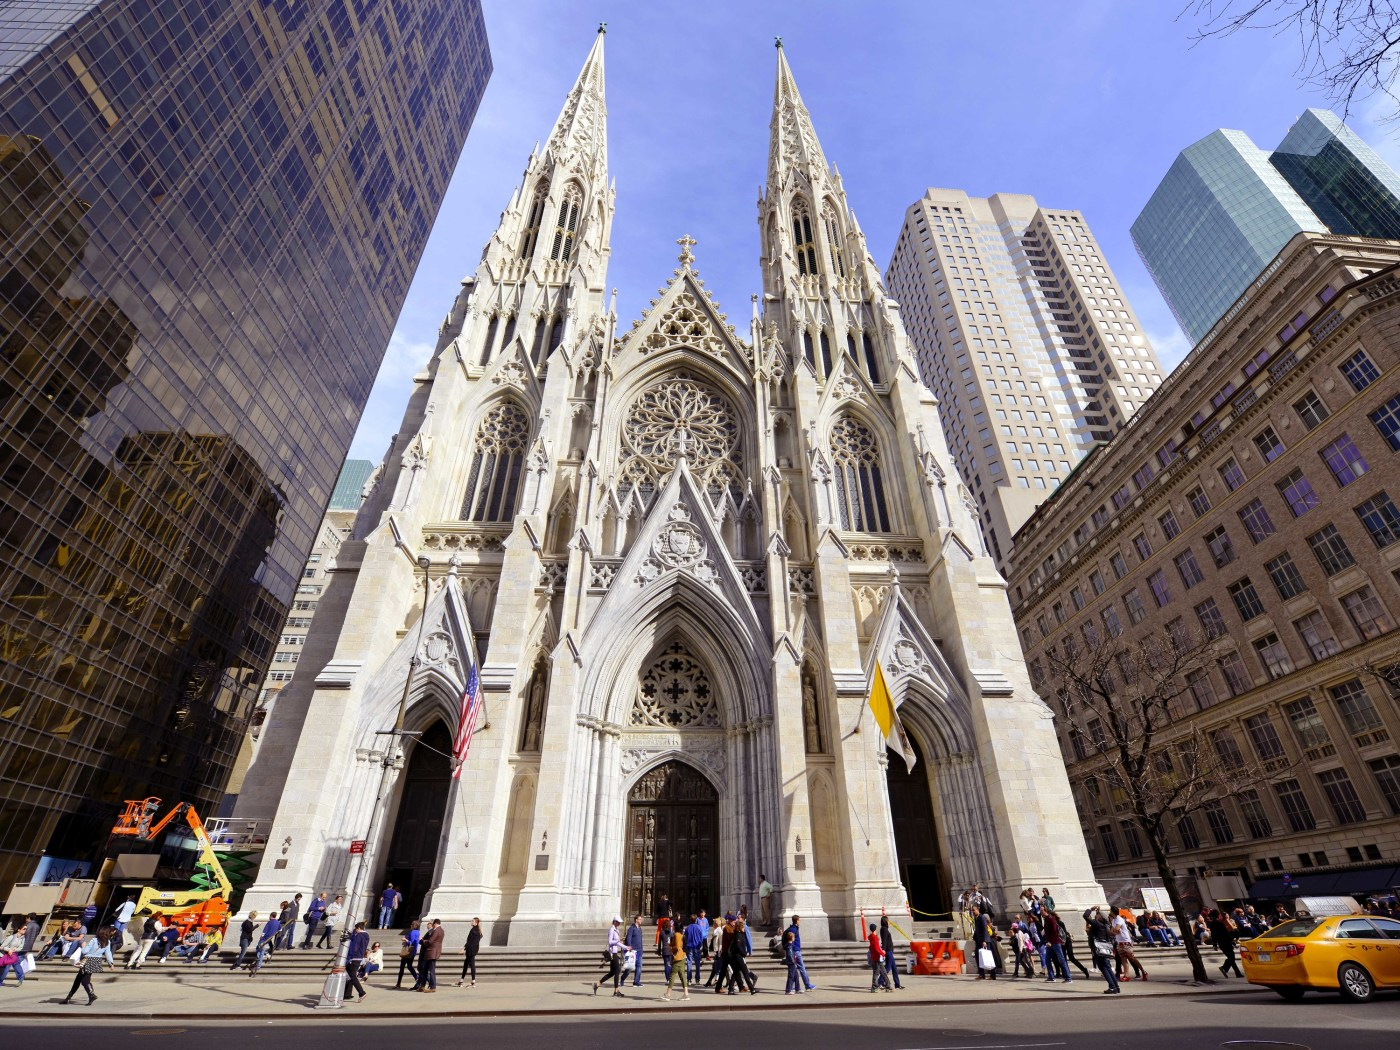 St. Patrick's Cathedral is live-streaming a service for Easter